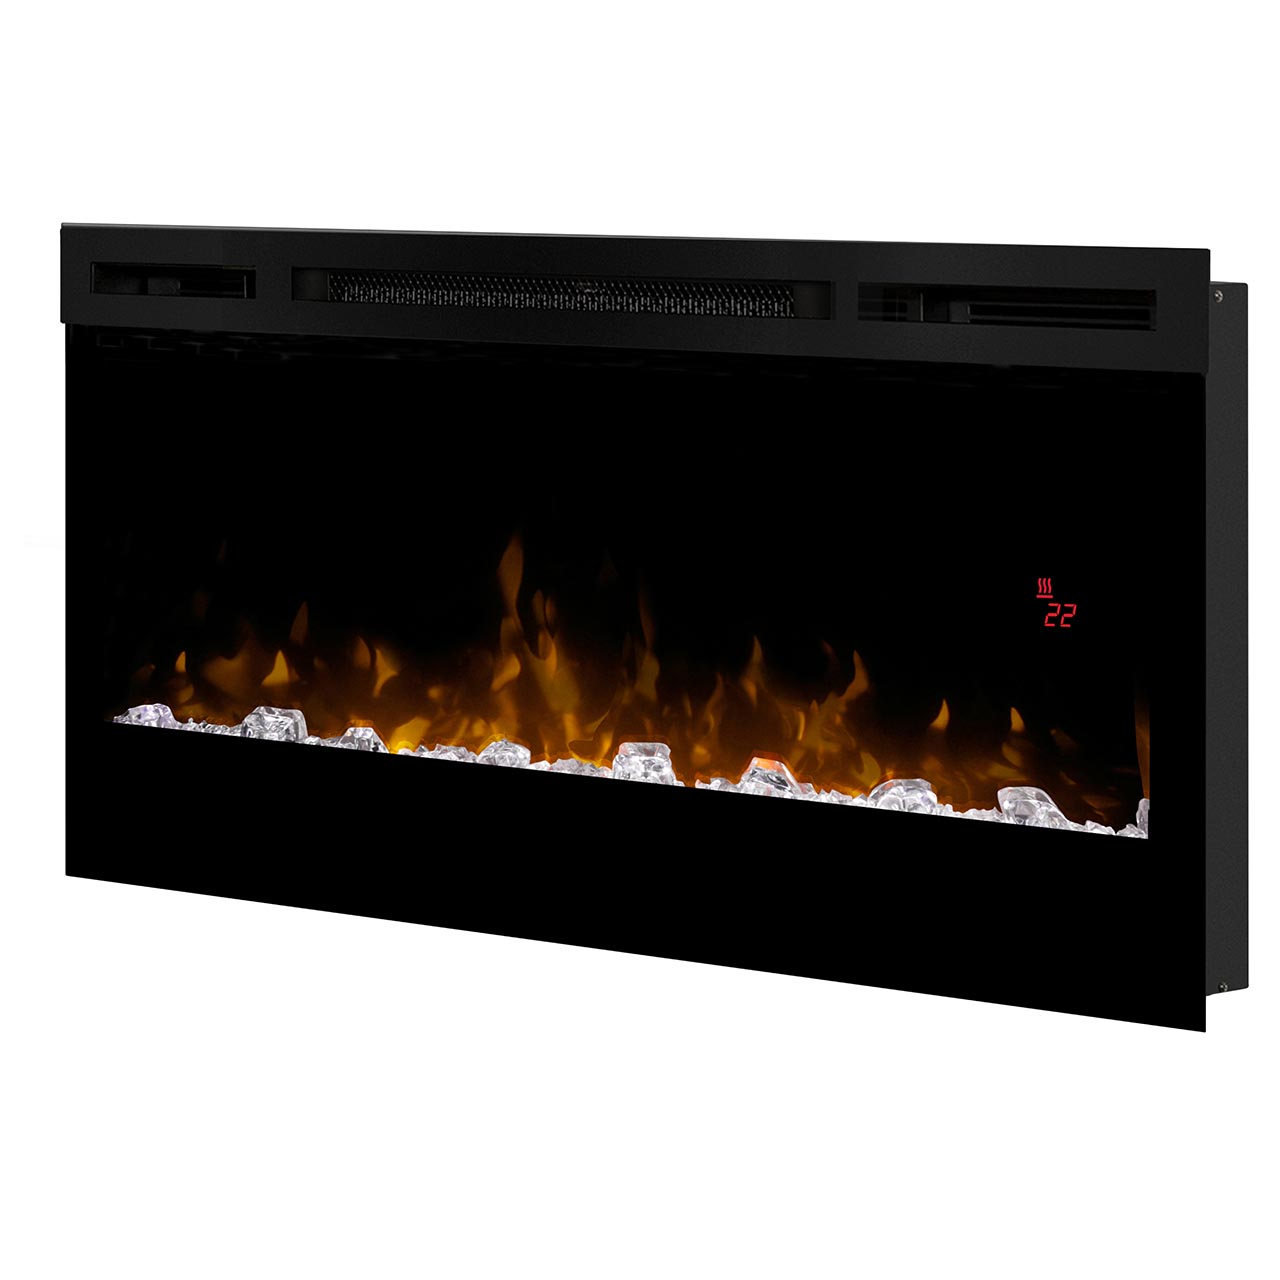 Dimplex Prism Series 34 Inch Electric Linear Fireplace